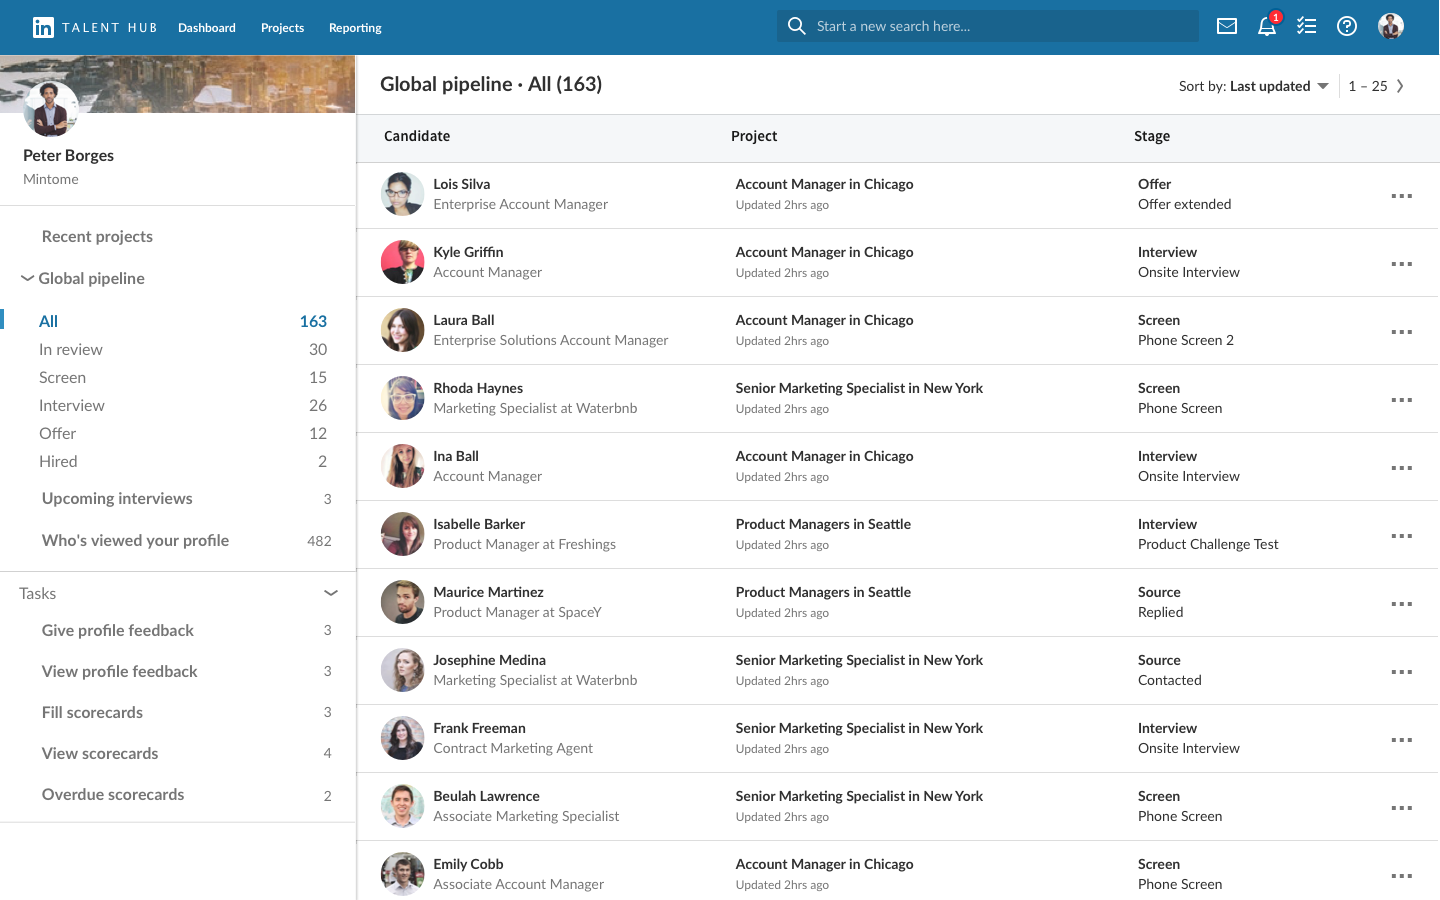 LinkedIn Launches Talent Hub to Recruit Applicants with Predictive Insights